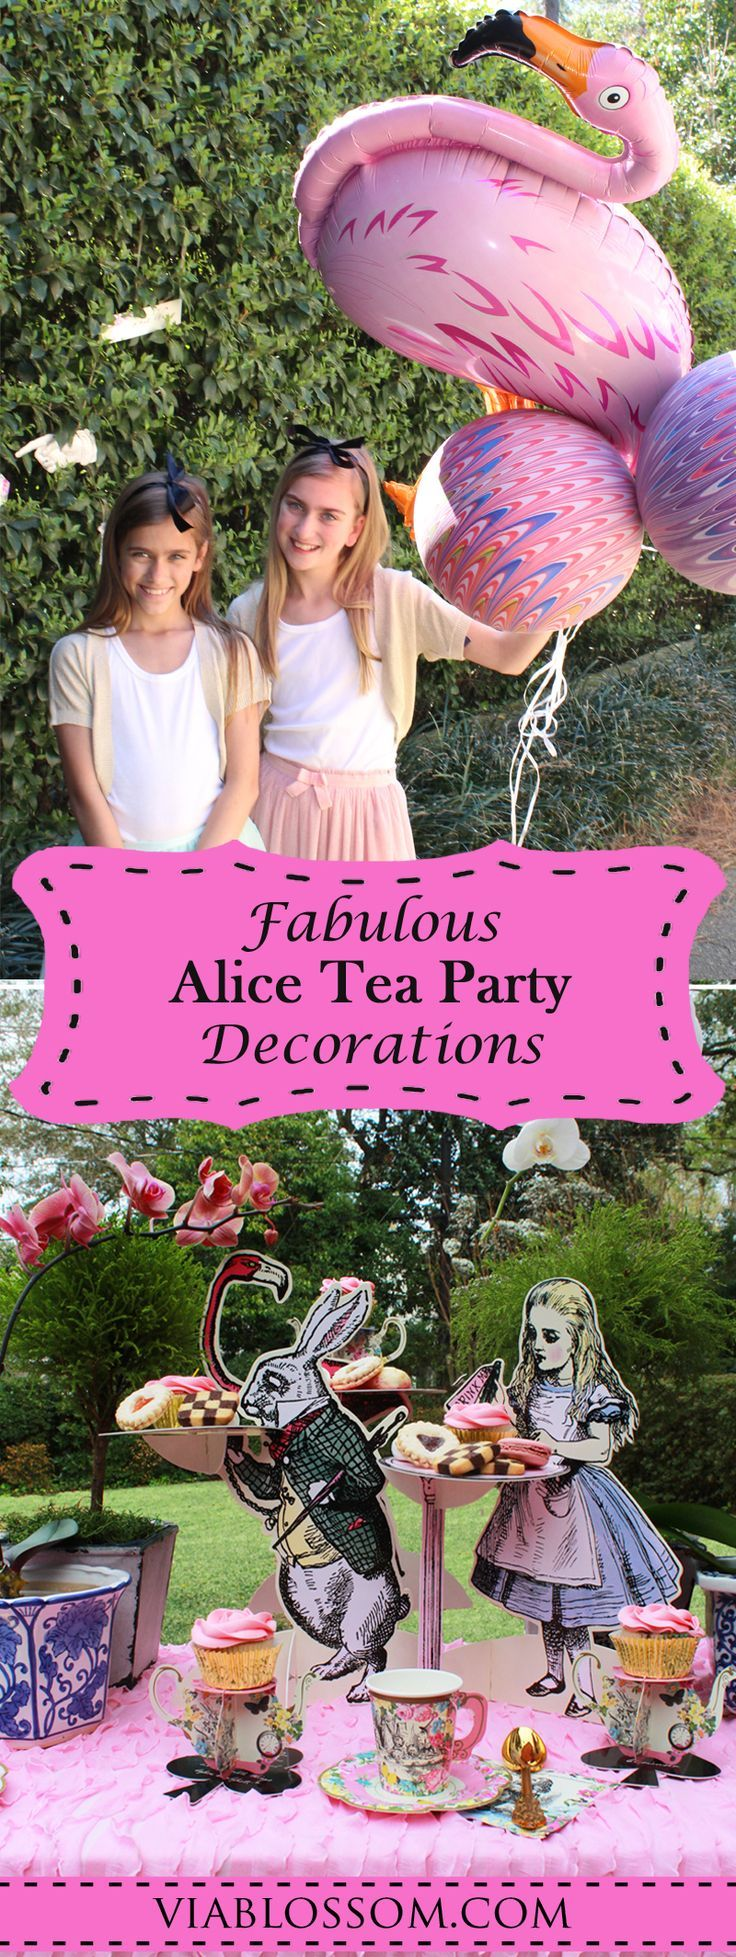 Mad hatter tea party decoration ideas - Whimsical Alice In Wonderland Party Ideas And Decorations For A Fun Mad Hatter Tea Party